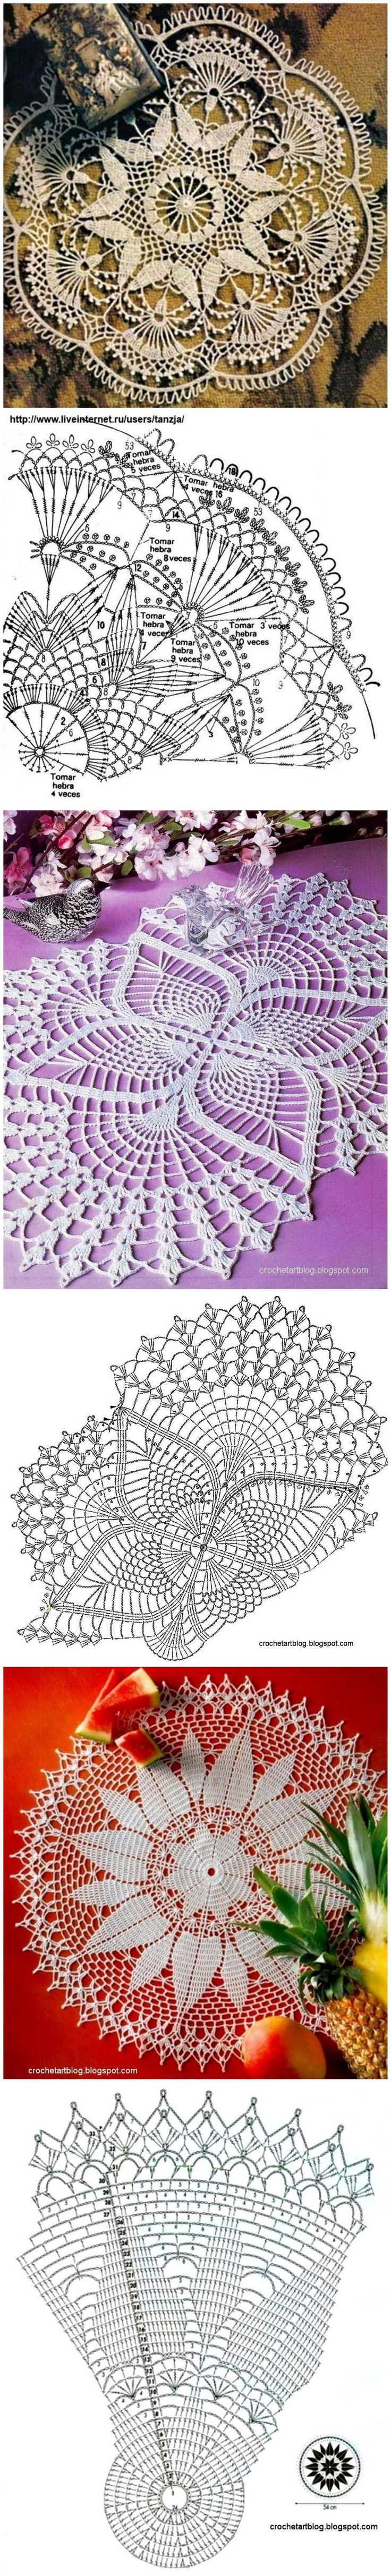 Lots & lots & ....  Lots of free crochet doily patterns here.: